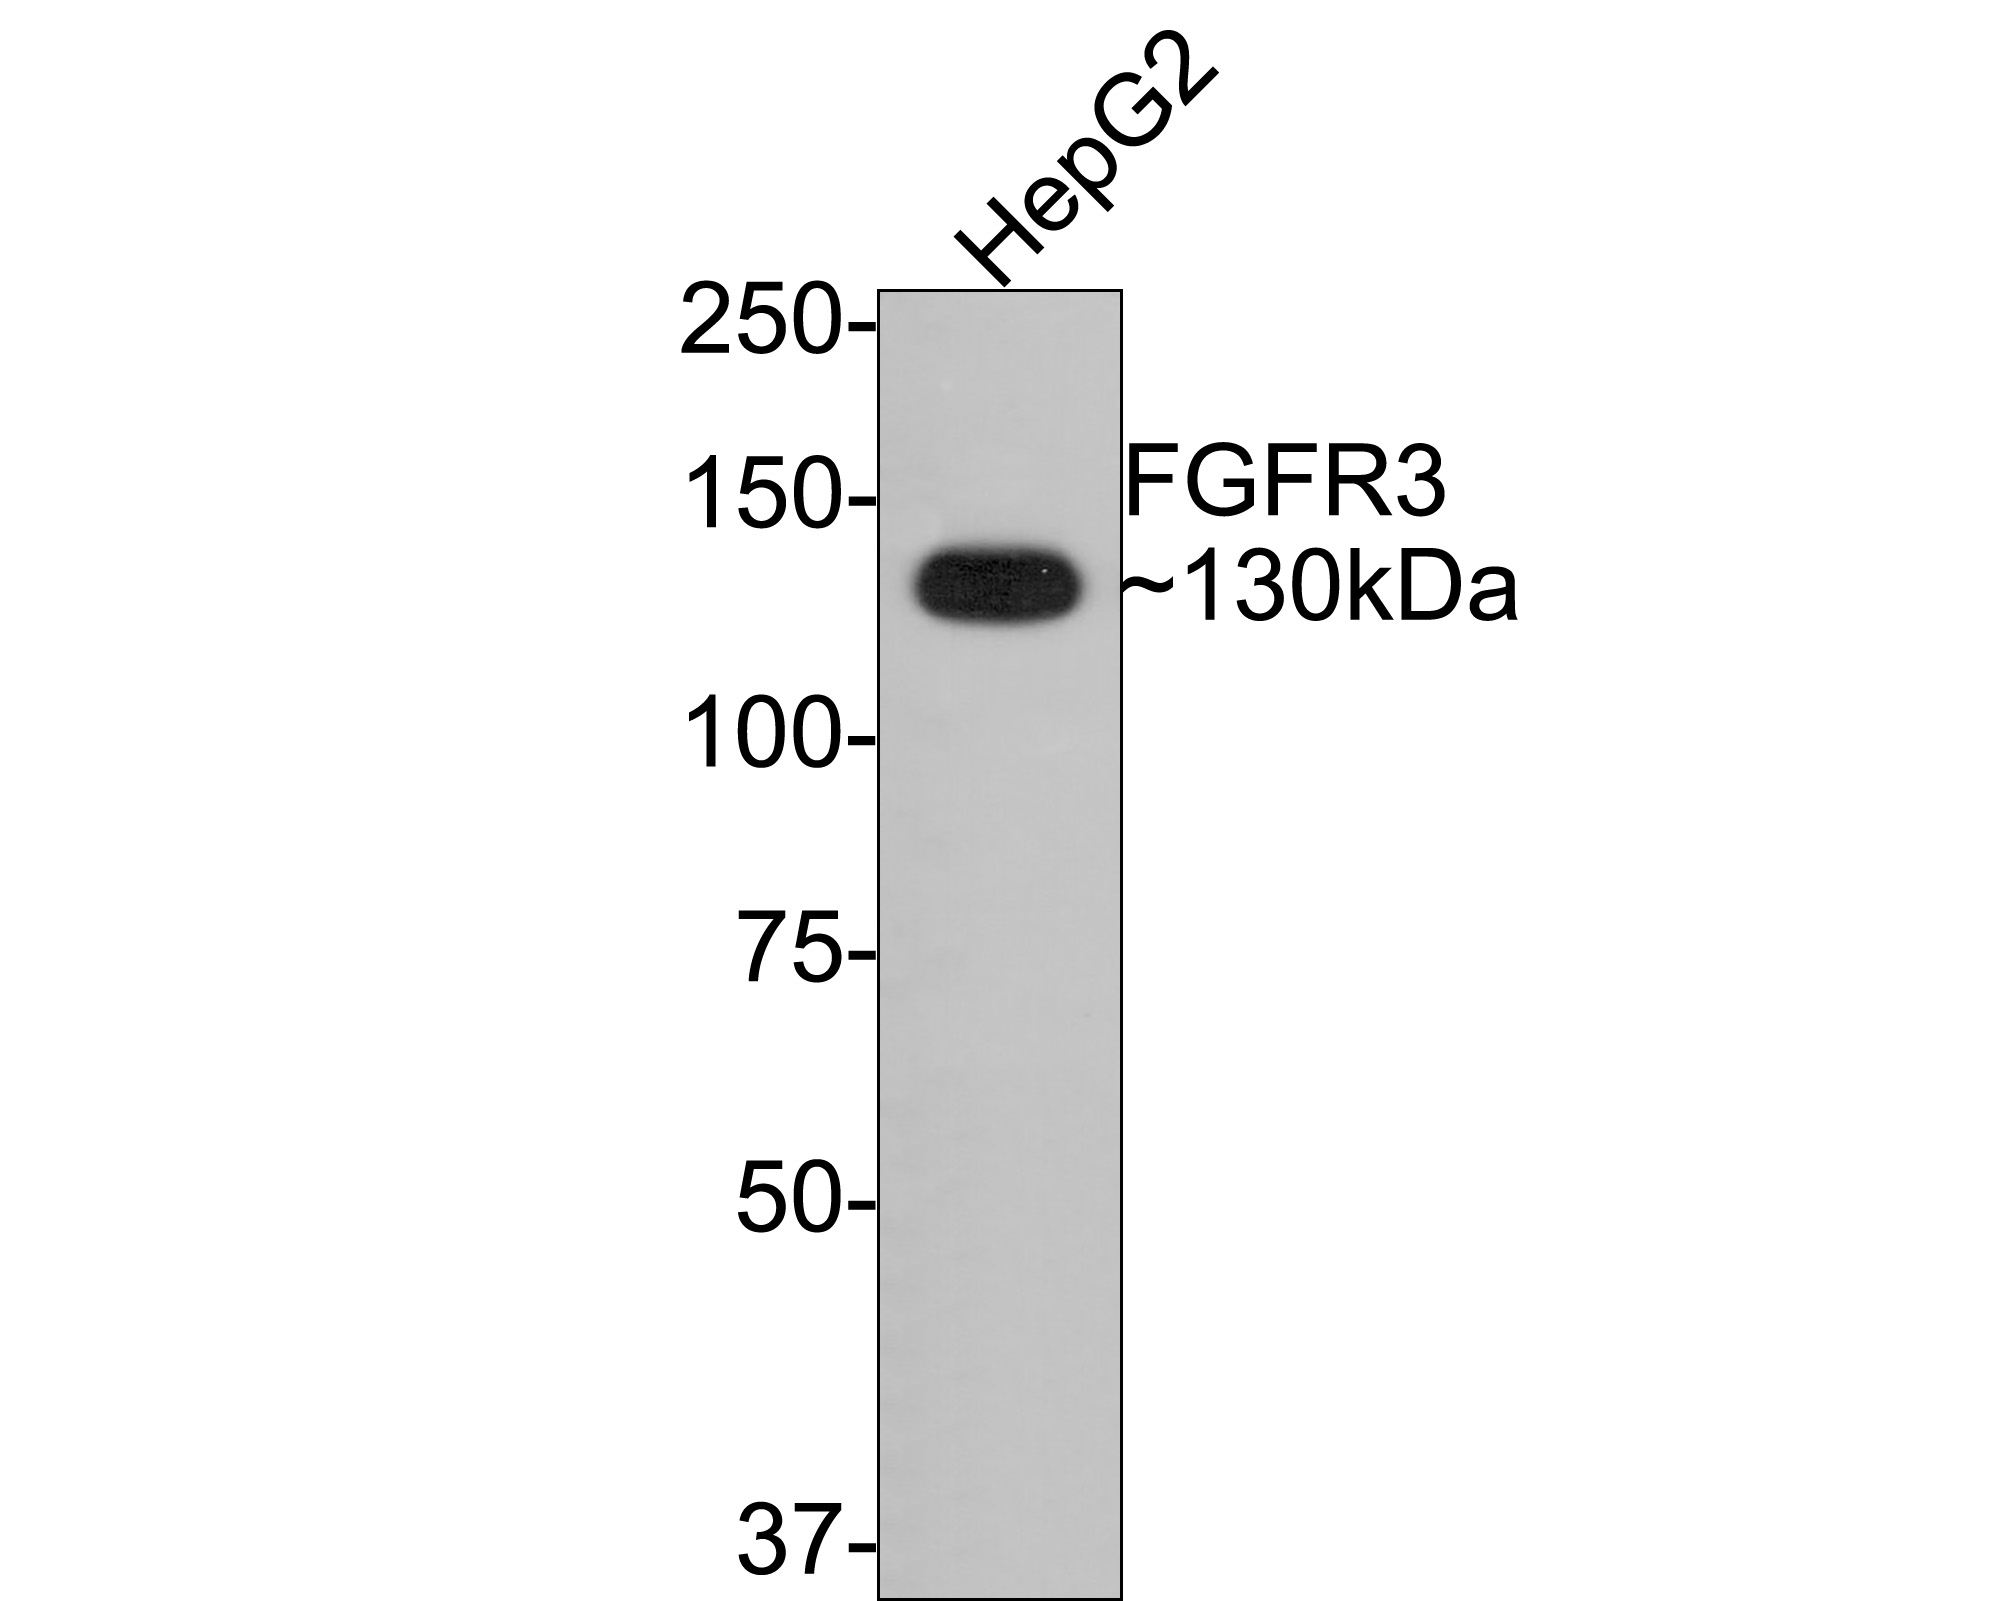 Western blot analysis of FGFR3 on Hela cells lysates using anti-FGFR3 antibody at 1/500 dilution.